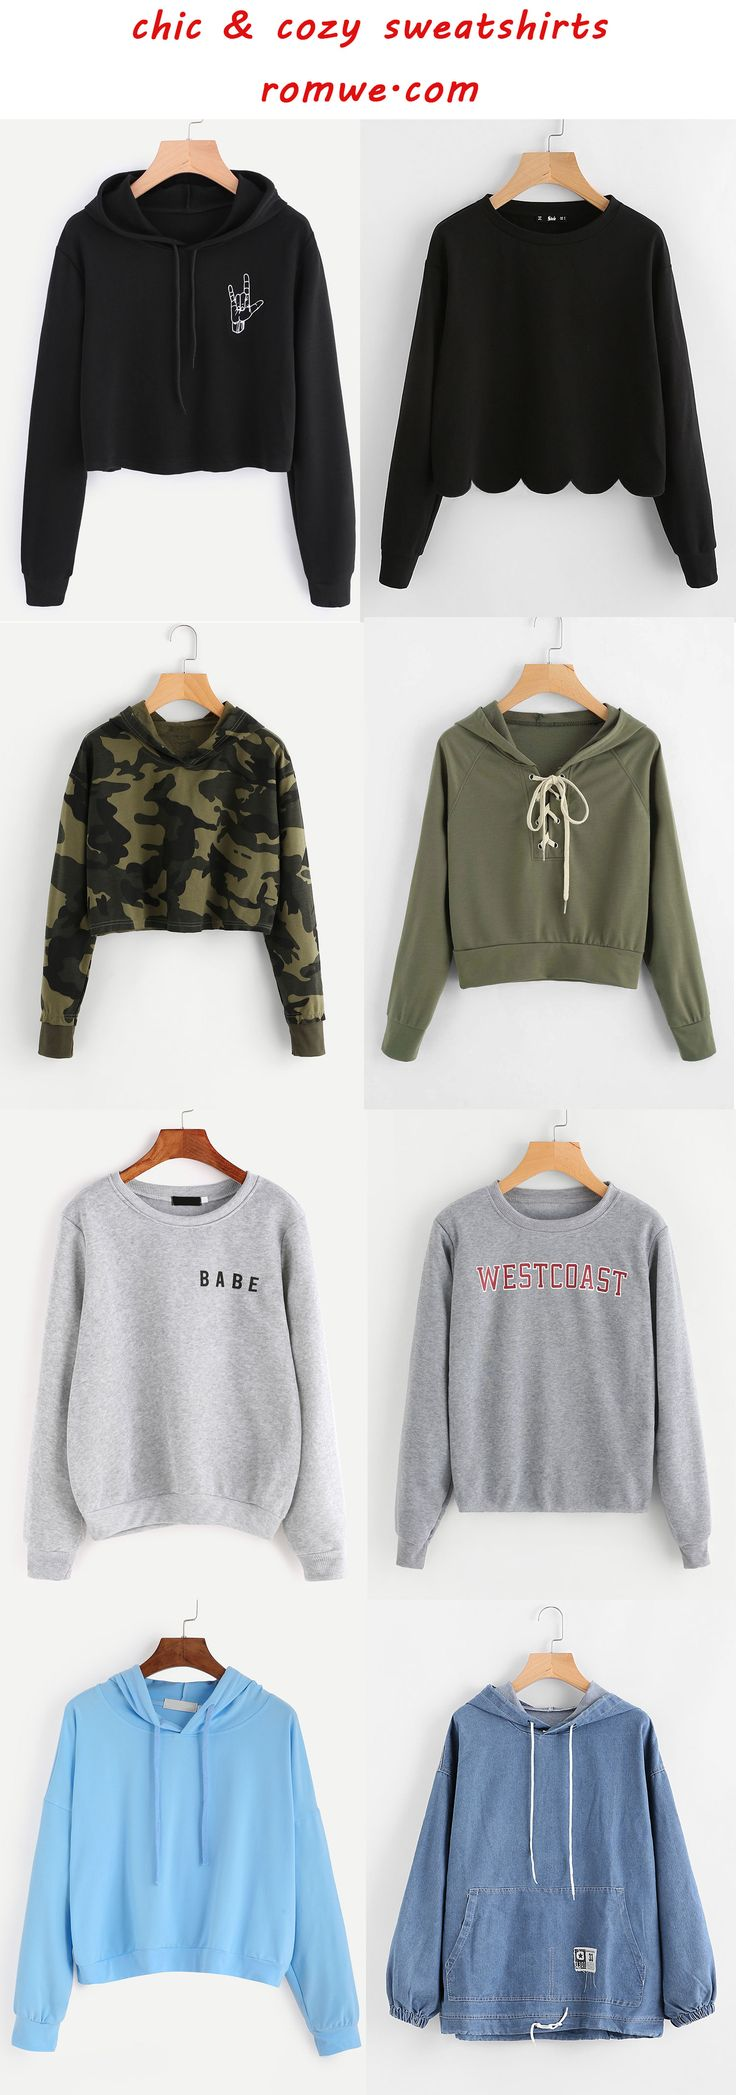 chic sweatshirts from romwe.com